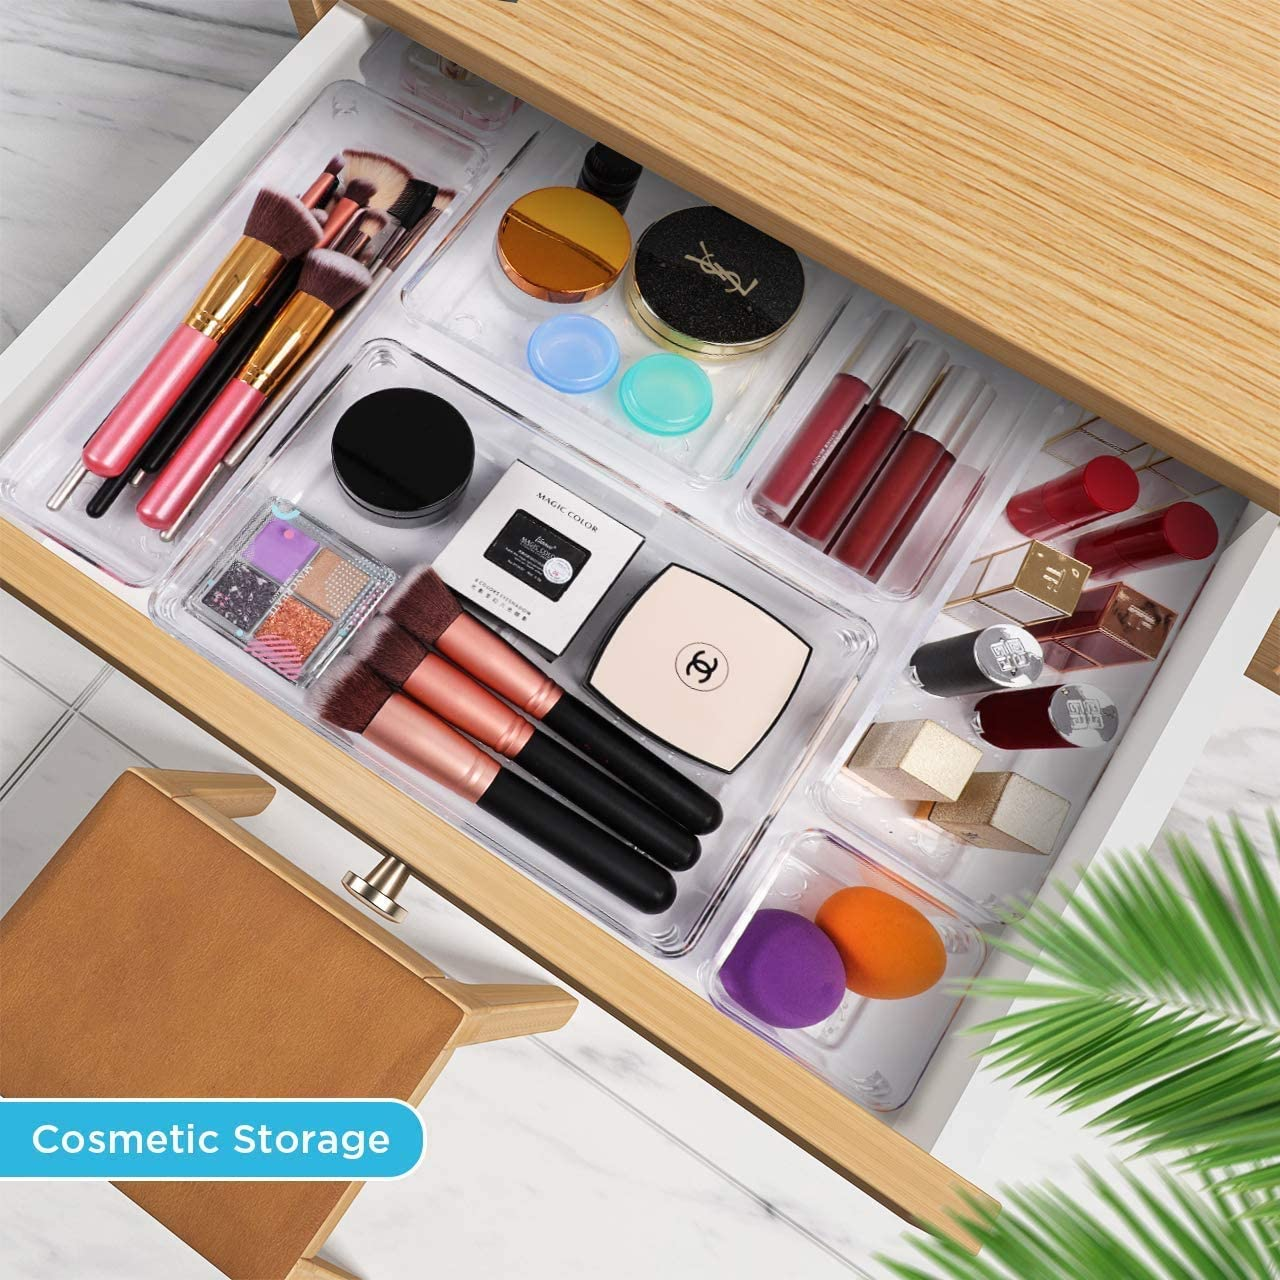 Kootek 28 Pcs Modular Drawer Organizer with 4-Size Drawer Dividers Makeup Organizers Bins Clear Customize Layout Storage Box with Bottom Wave Point Design for Bedroom Bathroom Kitchen Office